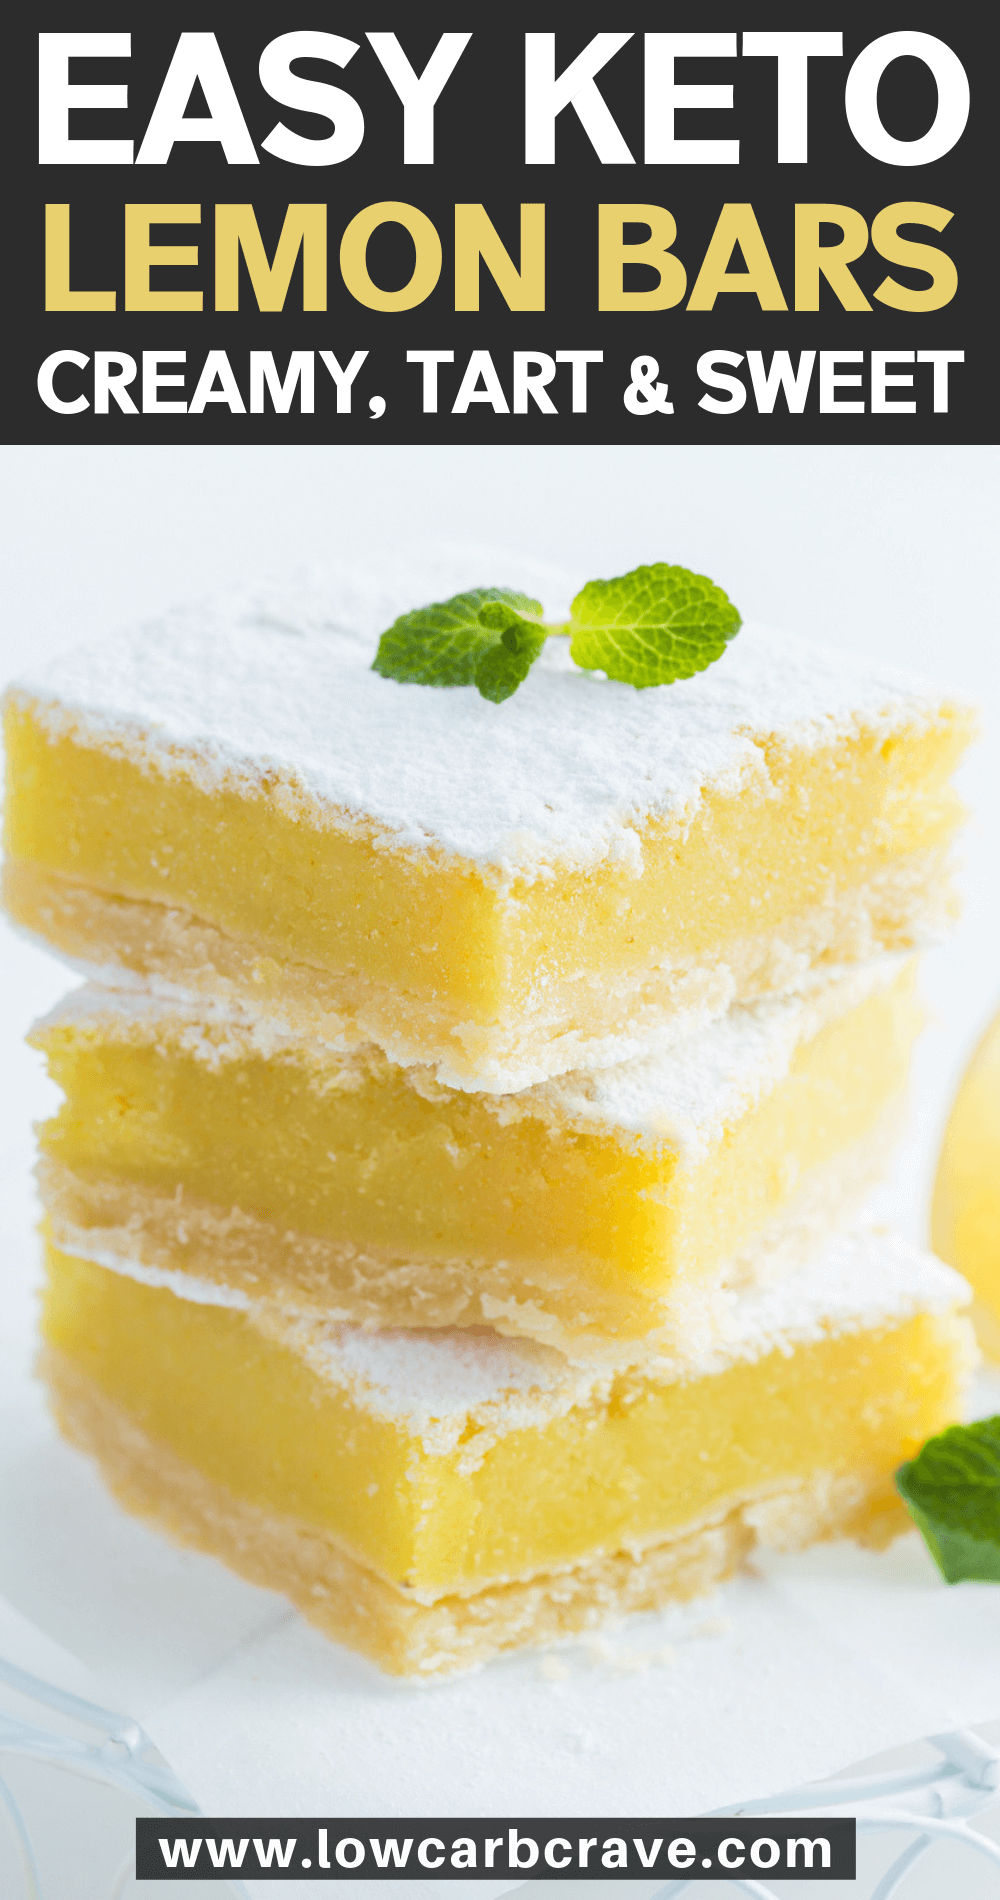 Insanely Good Keto Lemon Bars (Sugar-Free & Gluten